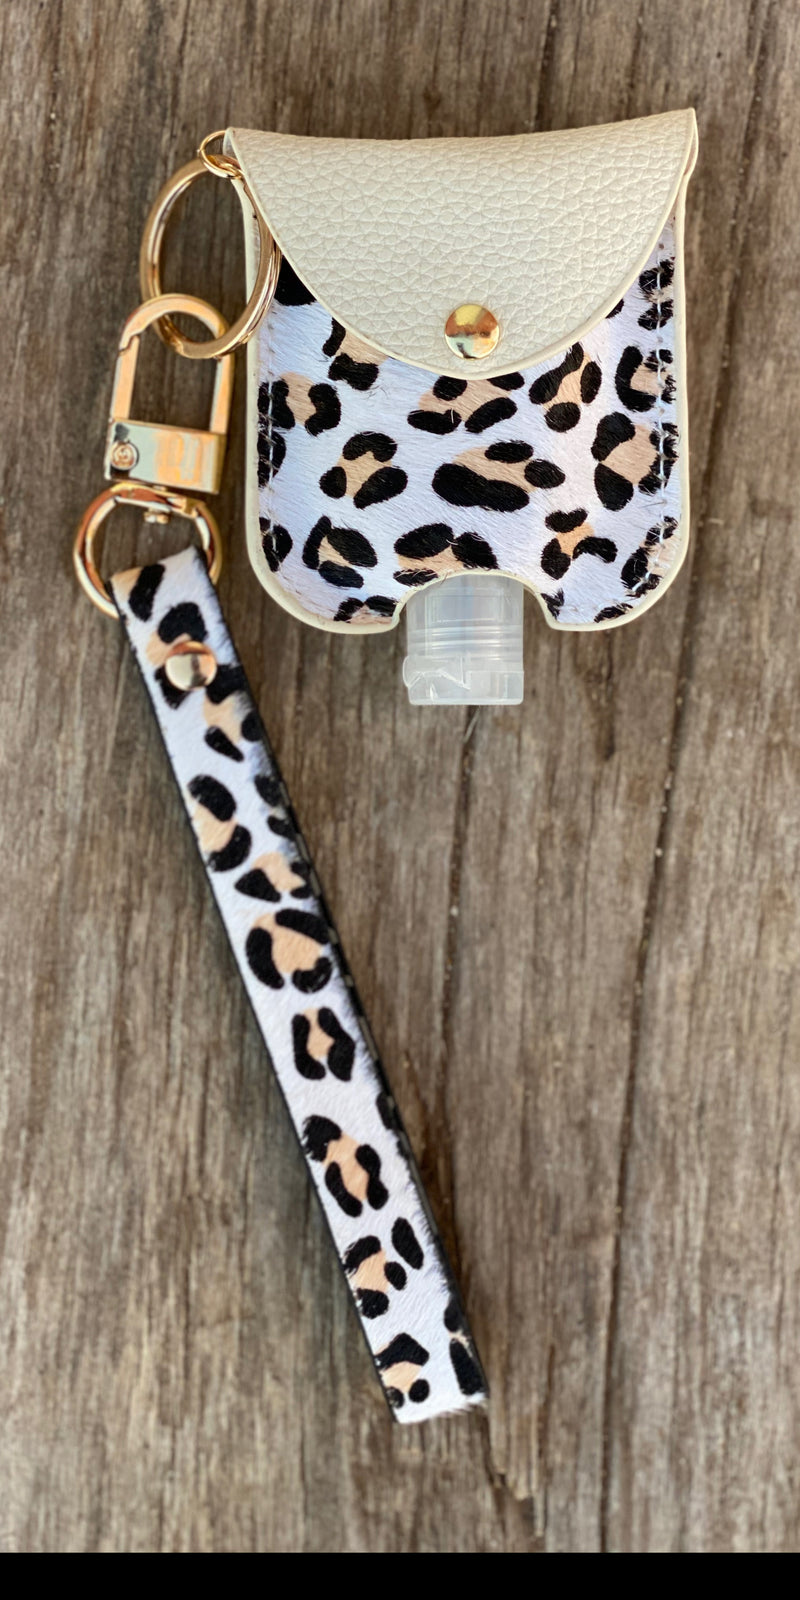 Leopard Hair On Hide Key Chain Hand Sanitizer